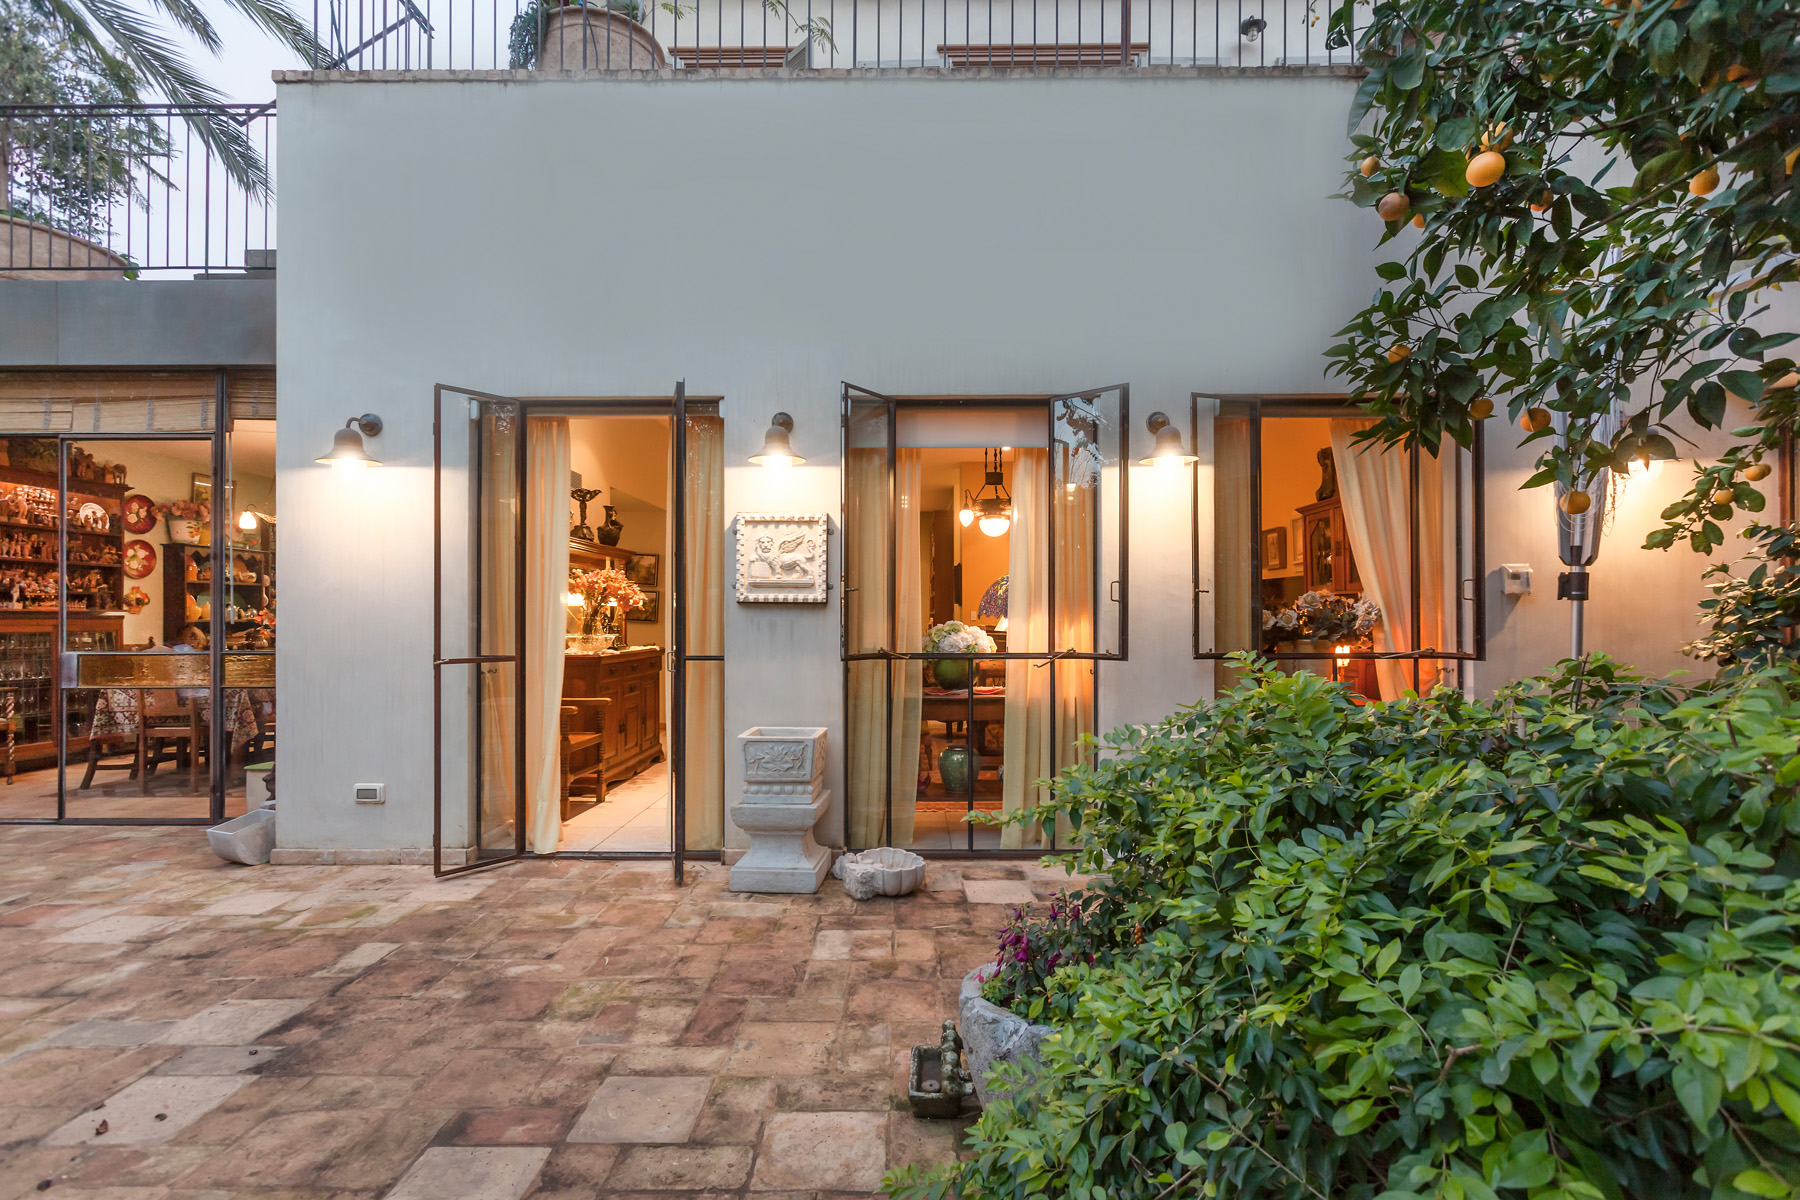 Single Family Home for Sale at An Eclectic Antique Style Home Tel Aviv, Israel Israel